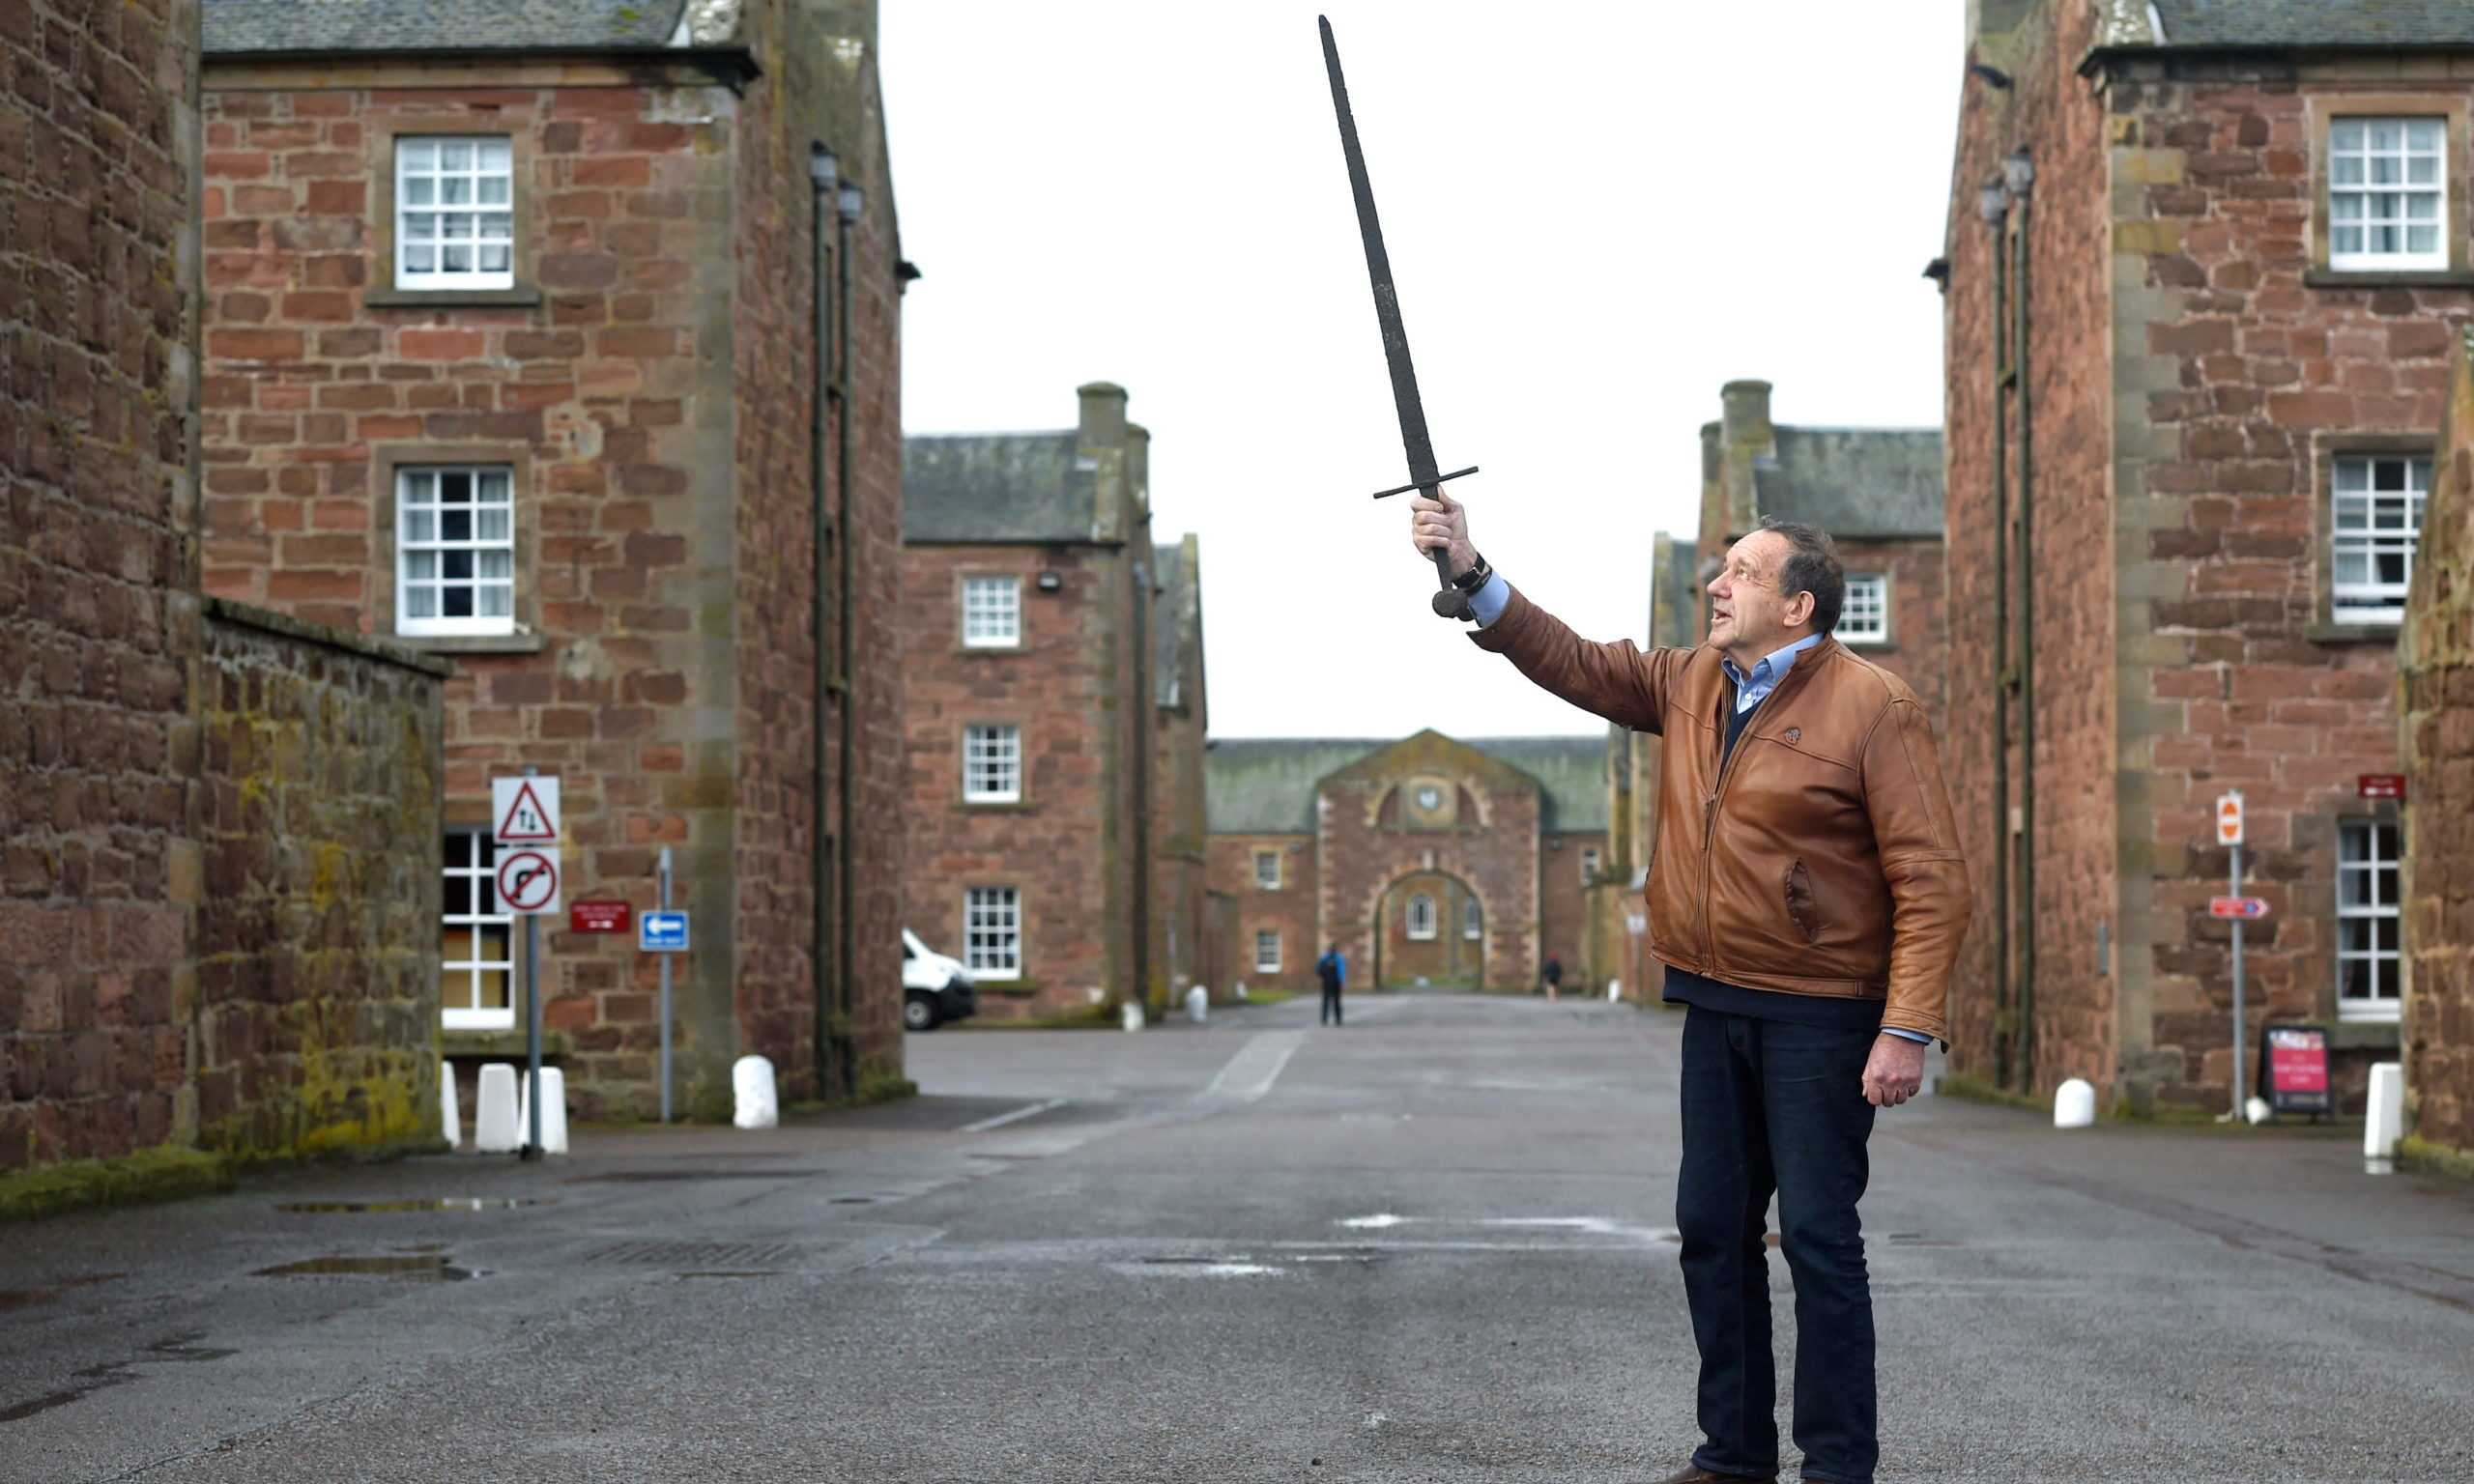 John Ormiston with his thirteenth century war sword reportedly recovered in 1876 from the site of the Battle of Stirling Bridge in Stirling when Wallace defeated the English. Picture by Sandy McCook